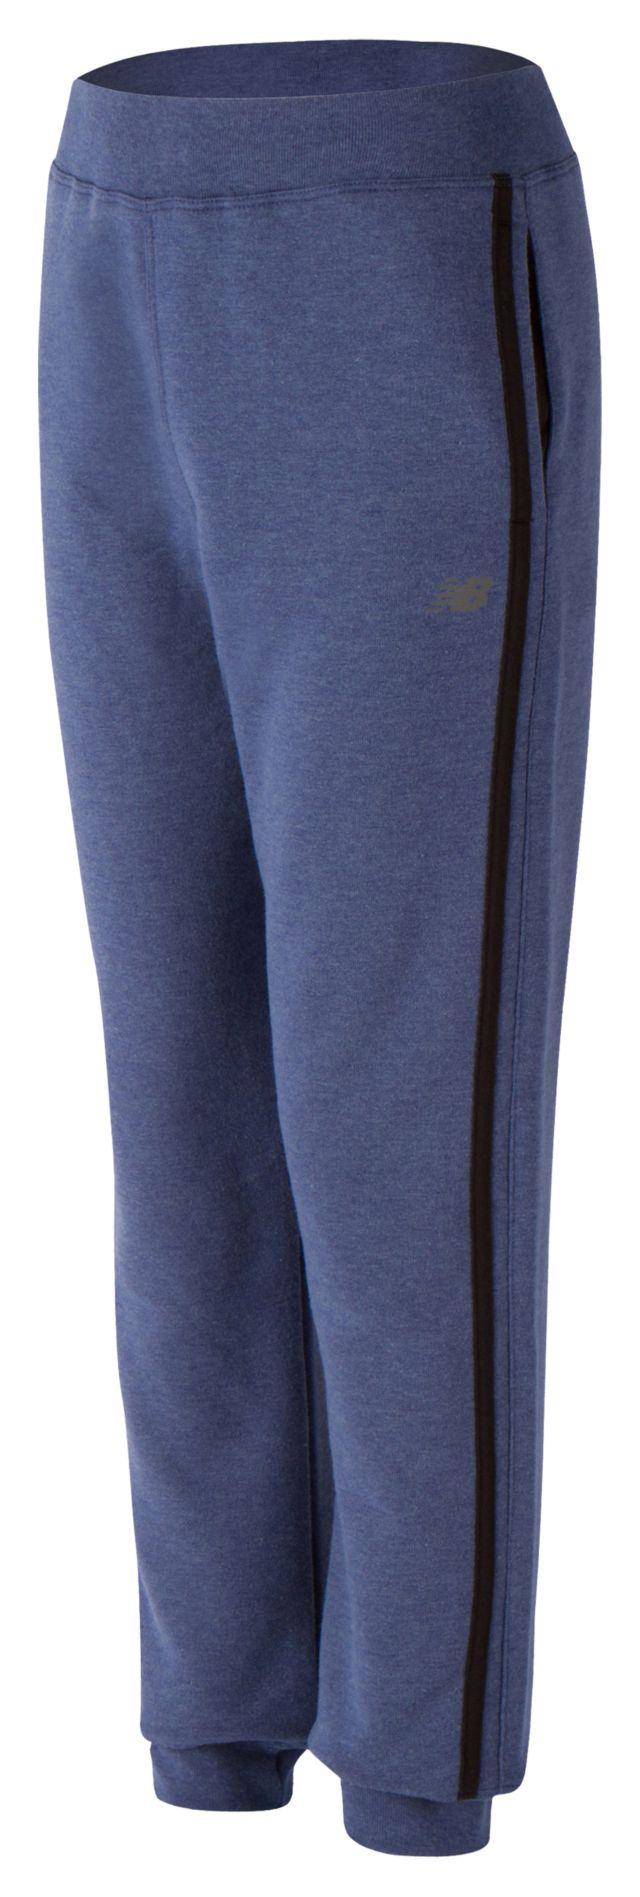 Boys French Terry Pant